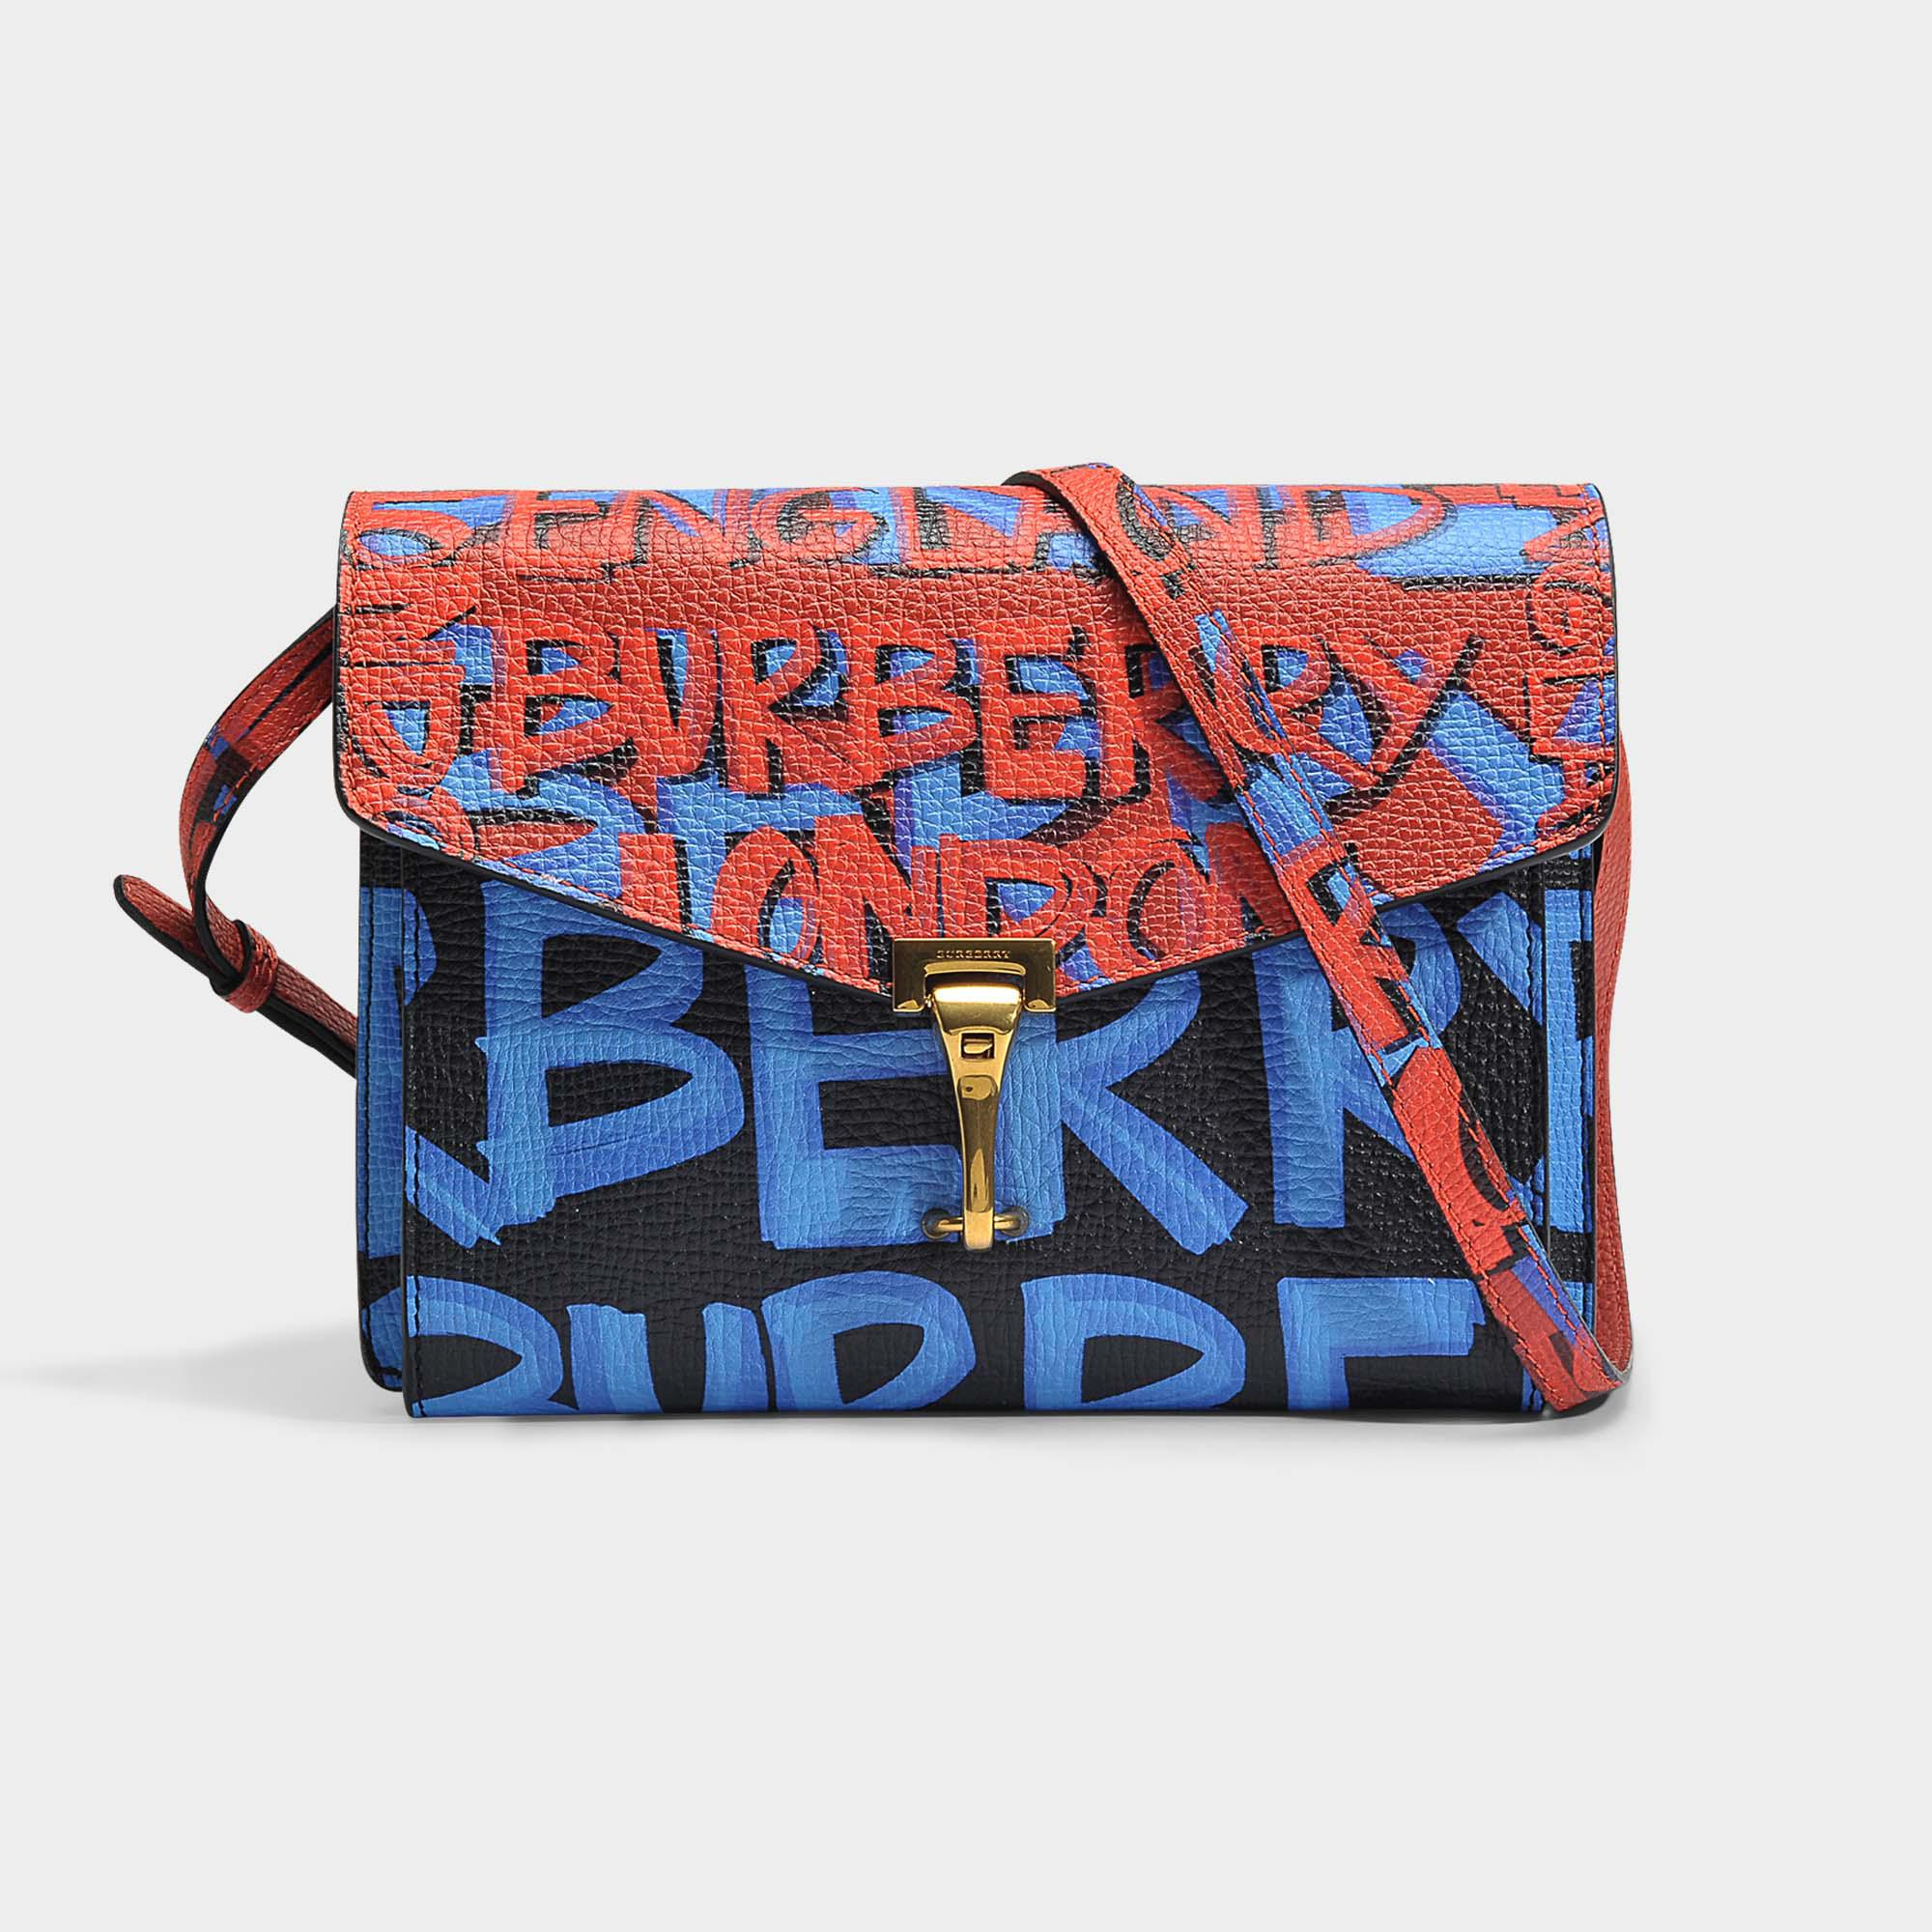 b0375393ce3a Lyst - Burberry Small Macken Graffiti Bag In Black Leather Graffiti ...